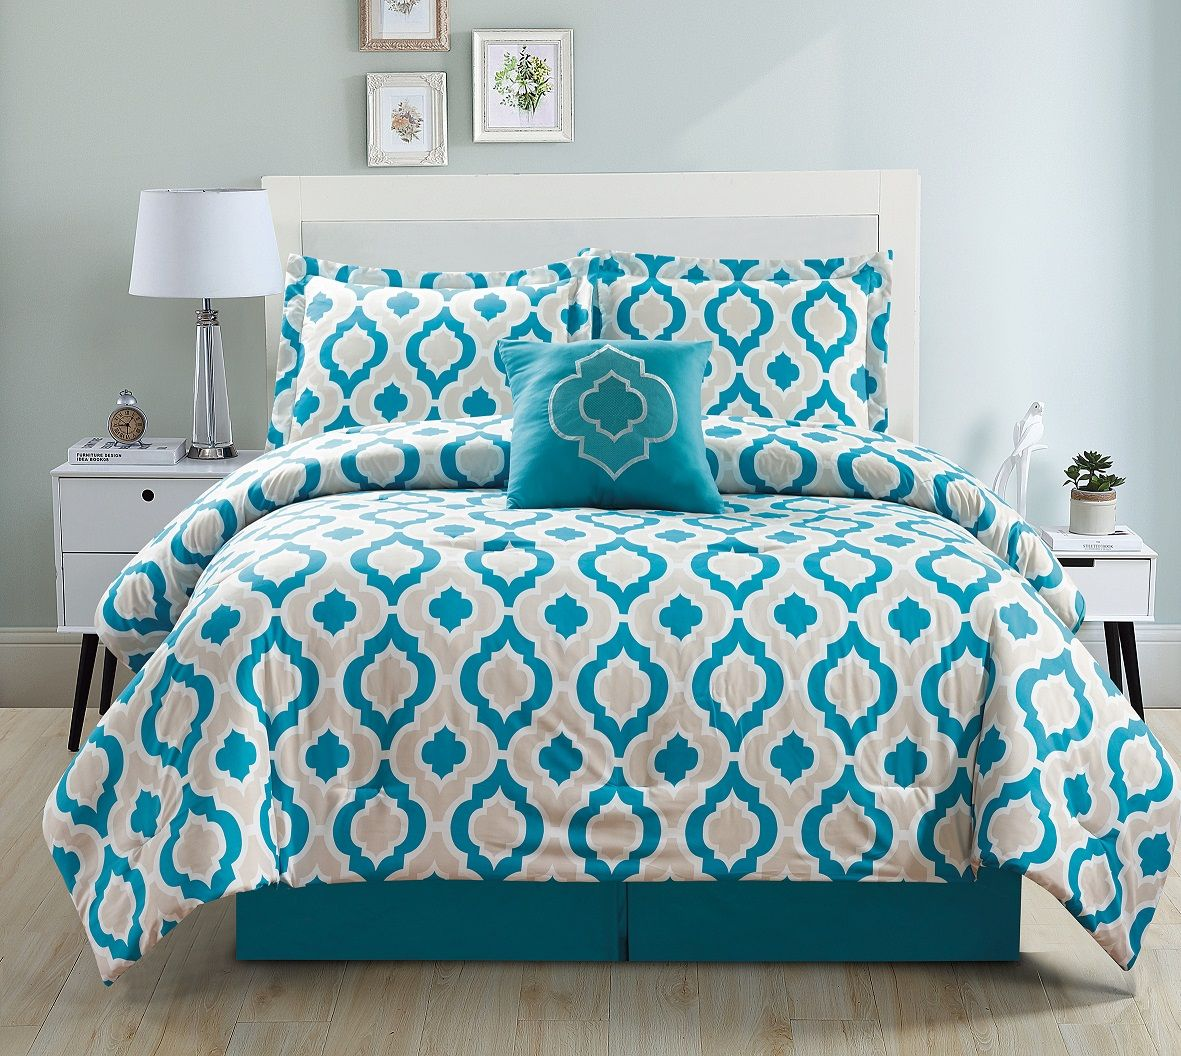 5 Piece Moroccan Teal Comforter Set King